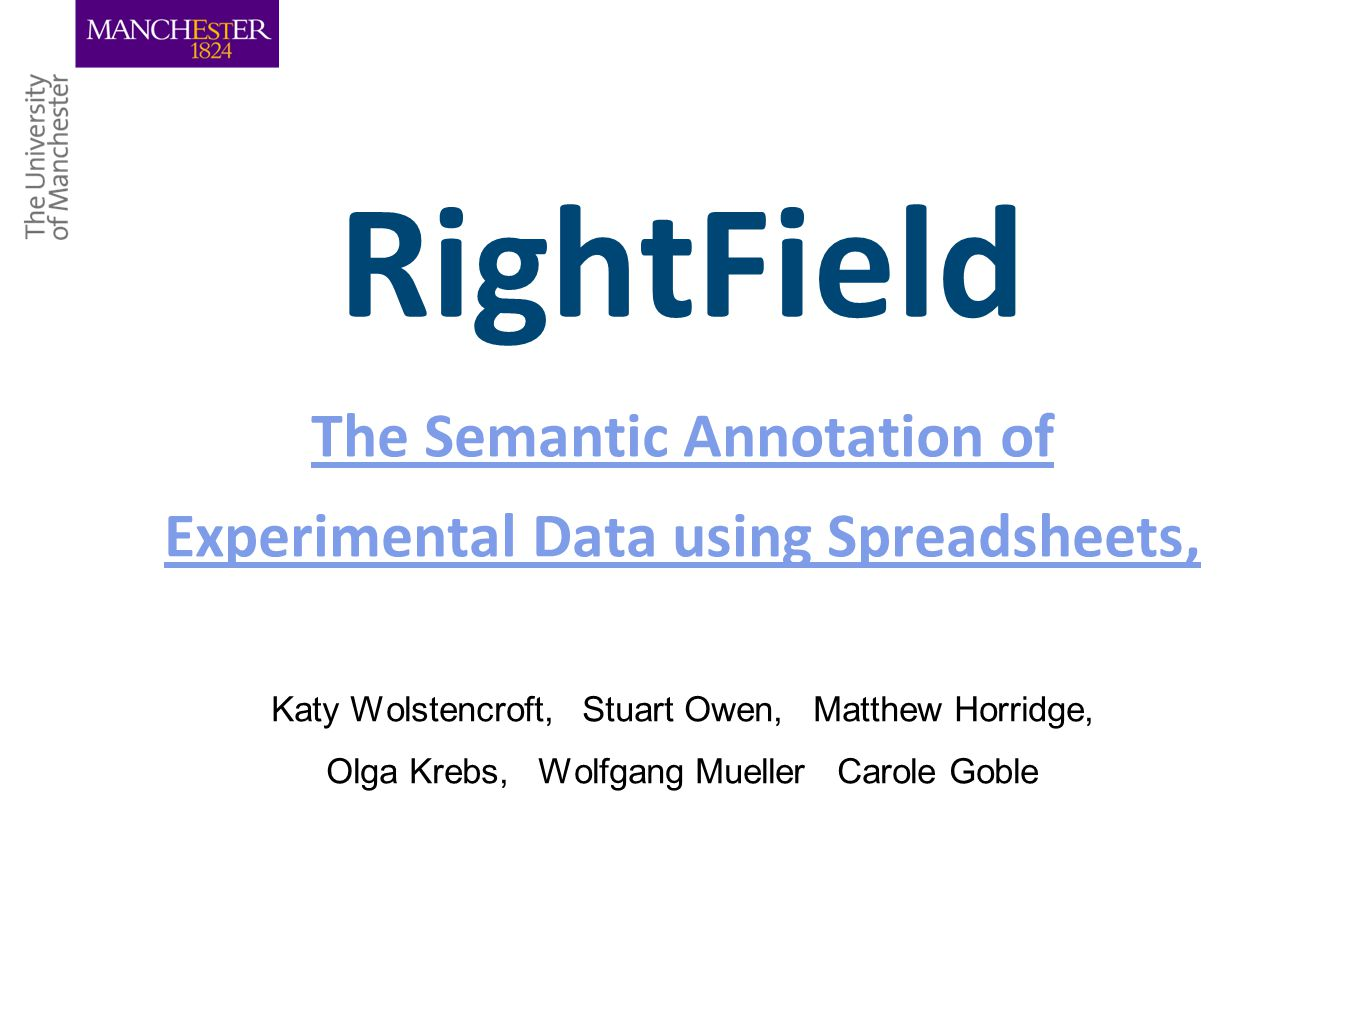 RightField The Semantic Annotation of Experimental Data using Spreadsheets, The Semantic Annotation of Experimental Data using Spreadsheets, Katy Wols